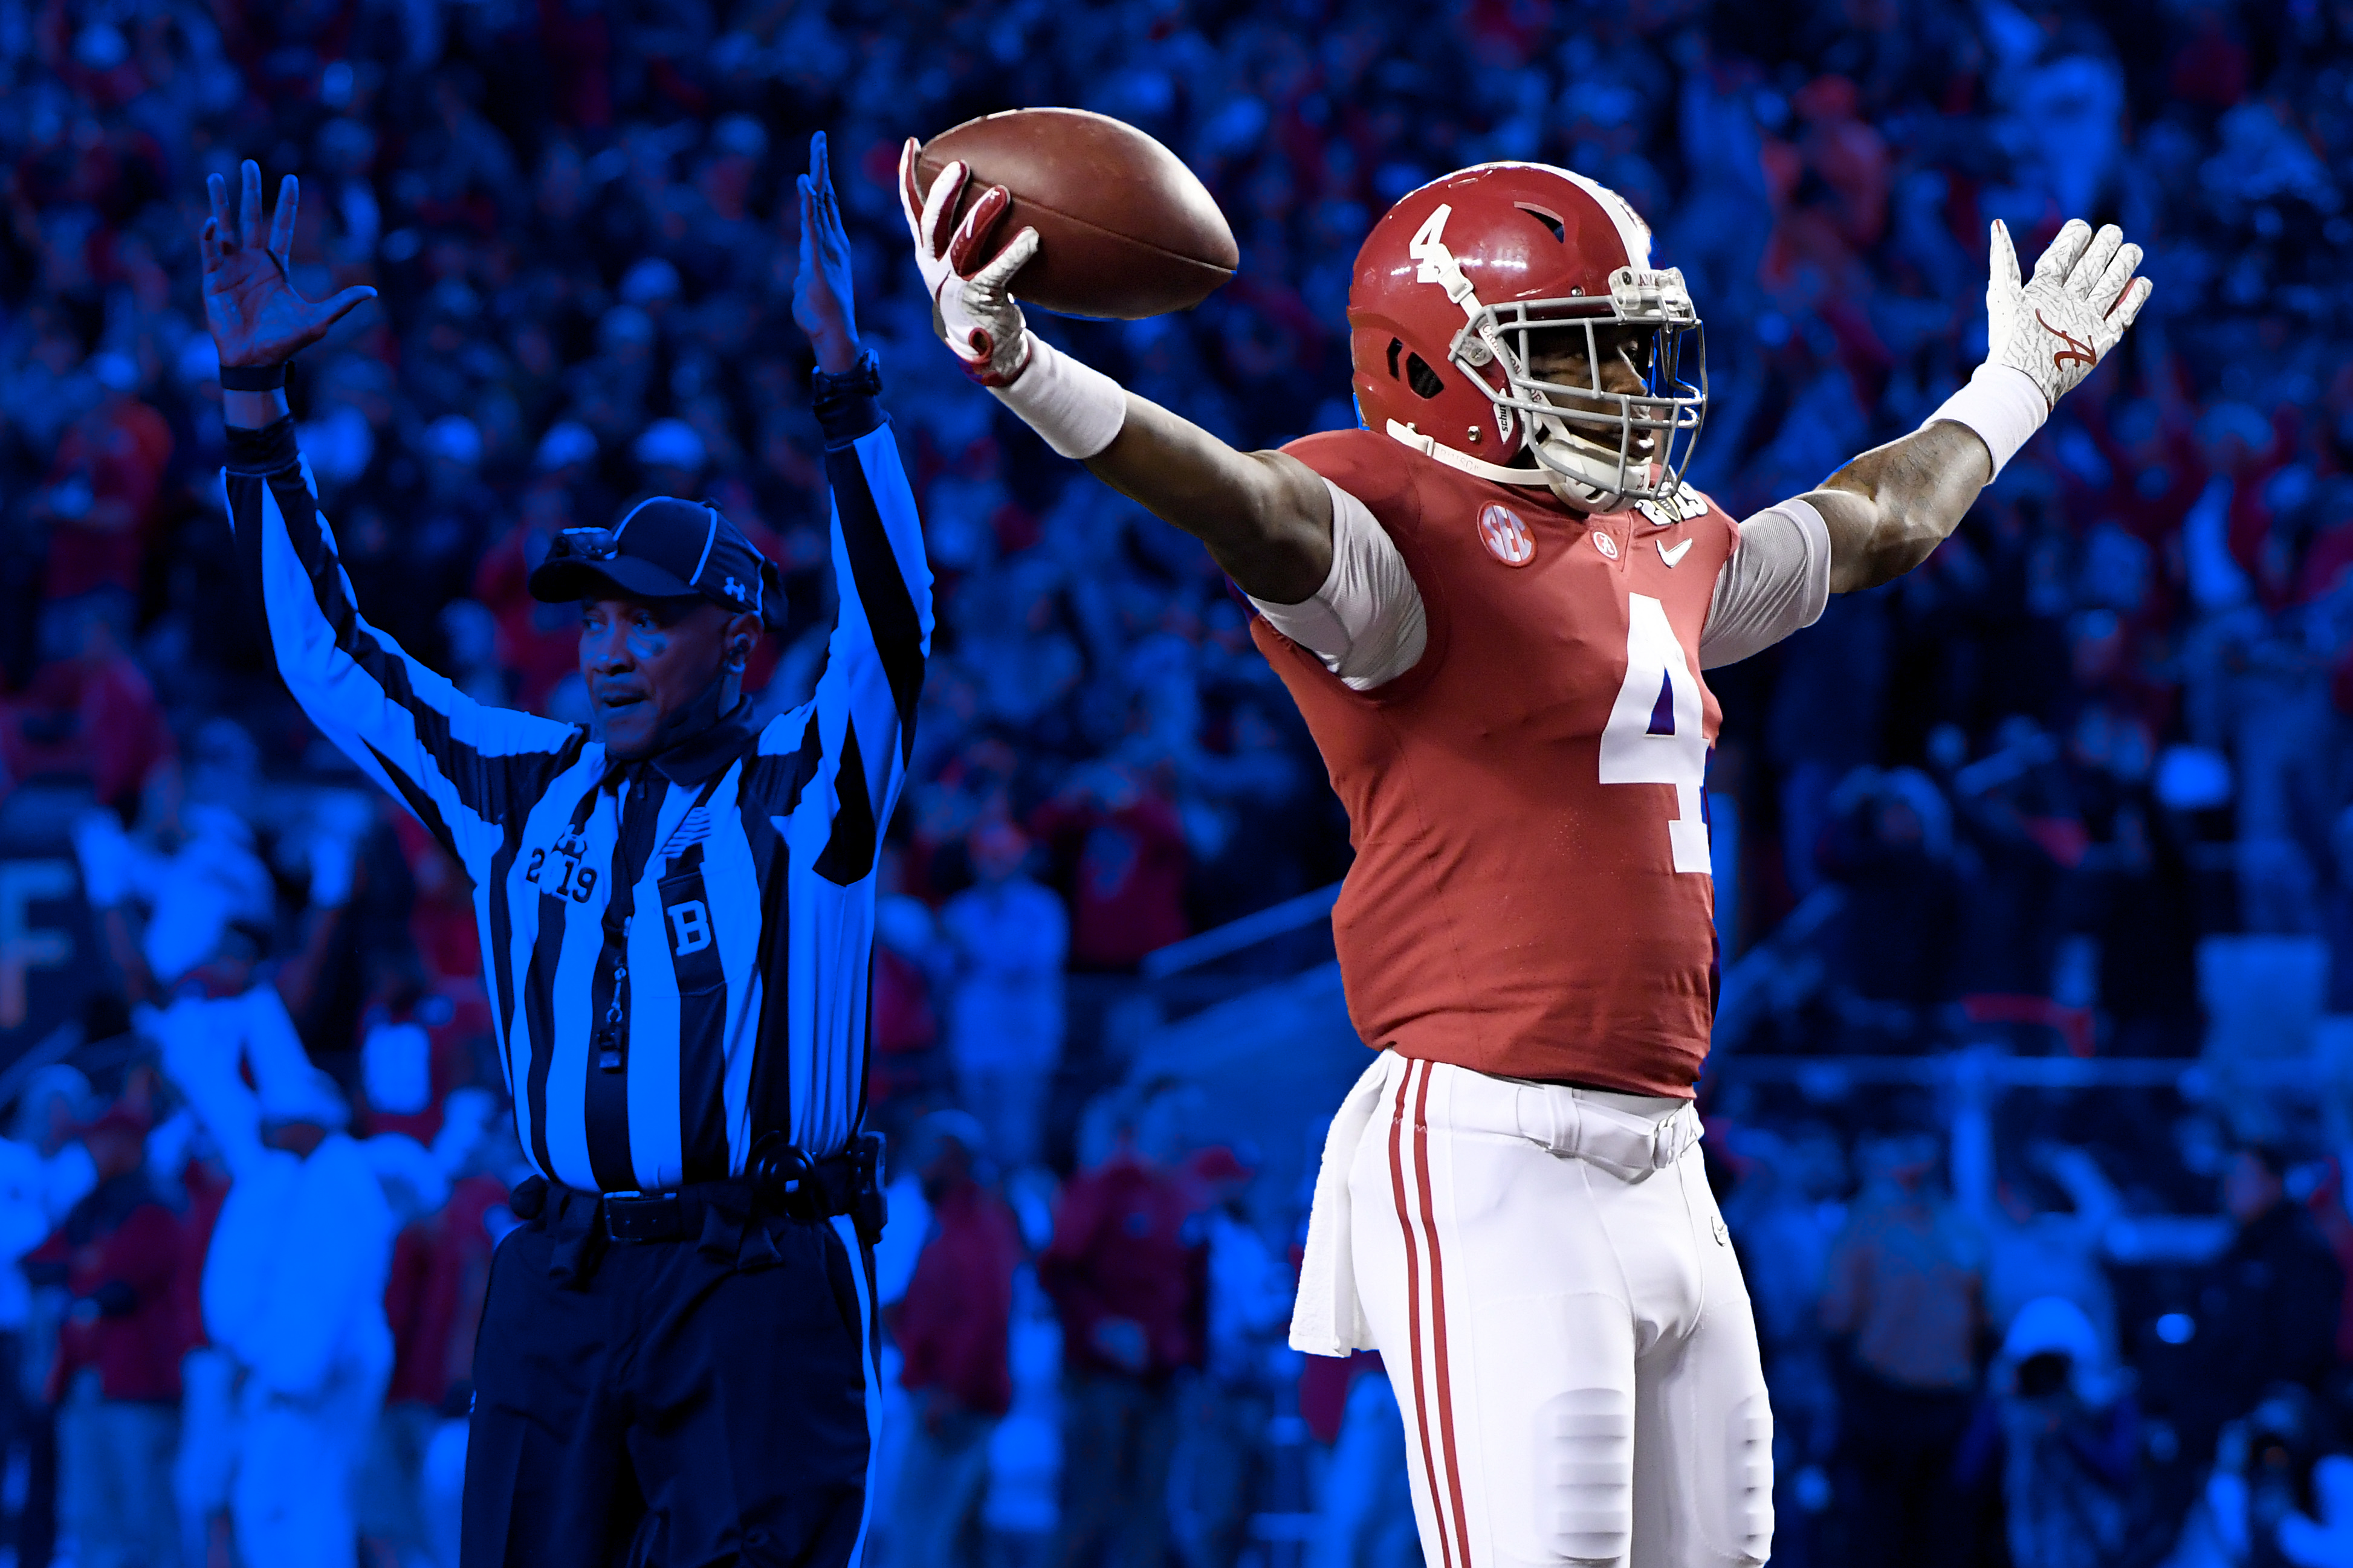 Jerry Jeudy after catching a touchdown in the College Football Playoff.